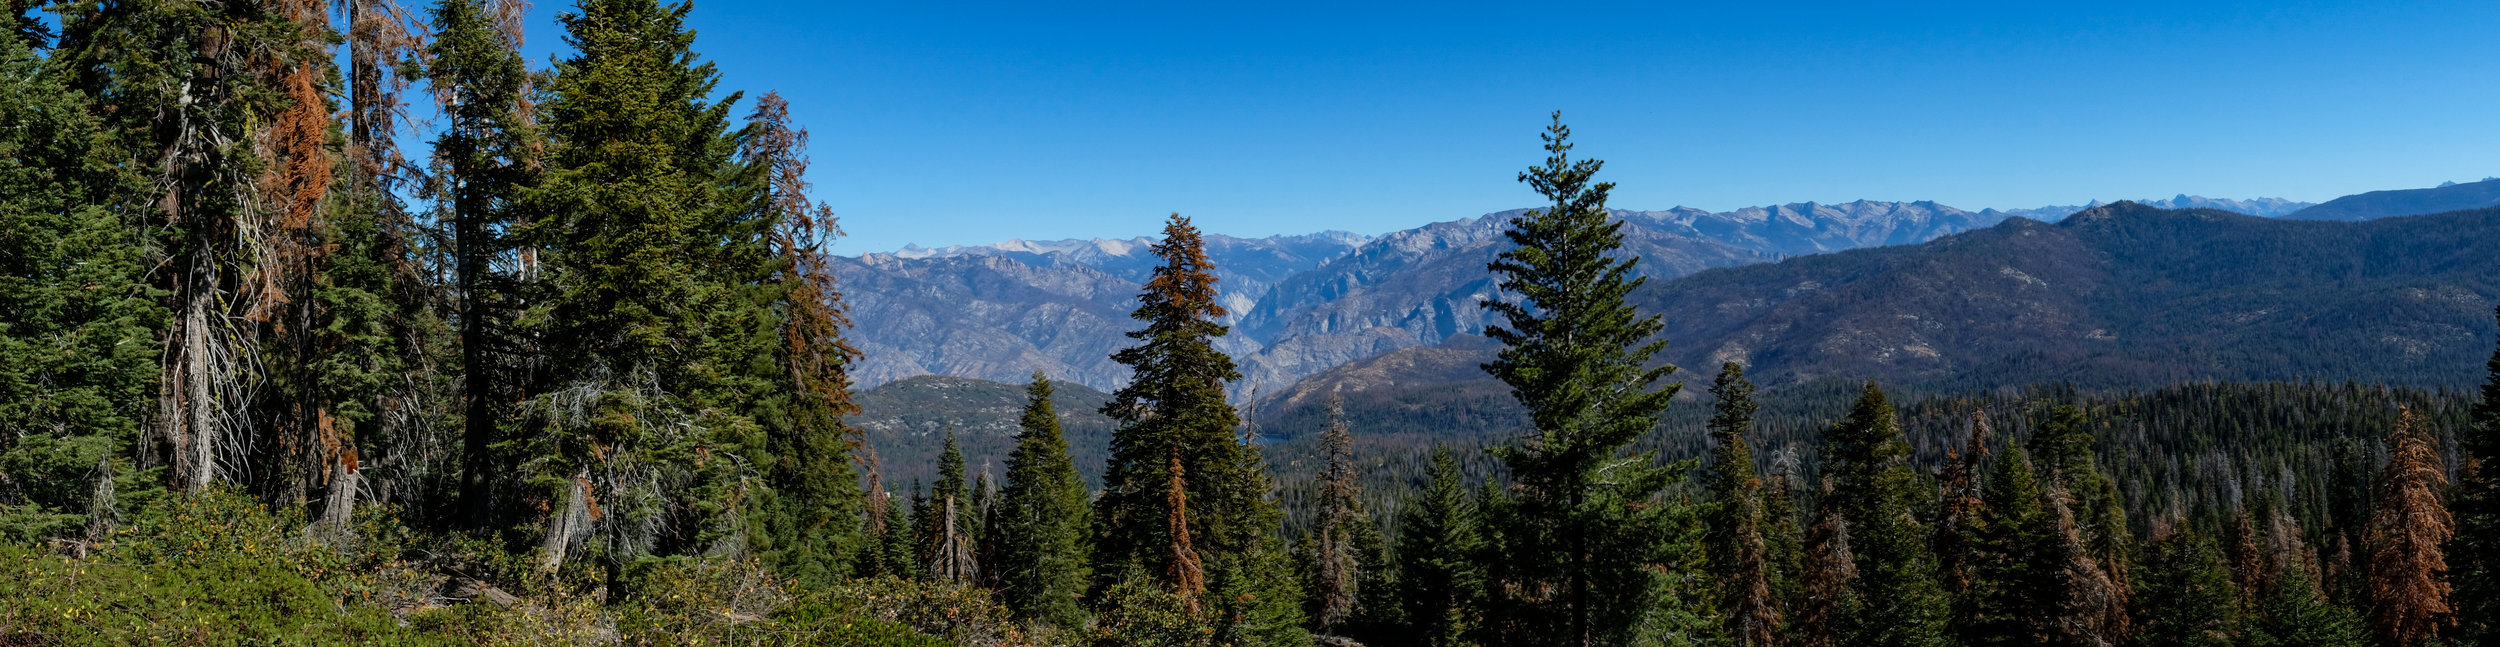 Kings Canyon National Park from Panoramic View Trail, CA